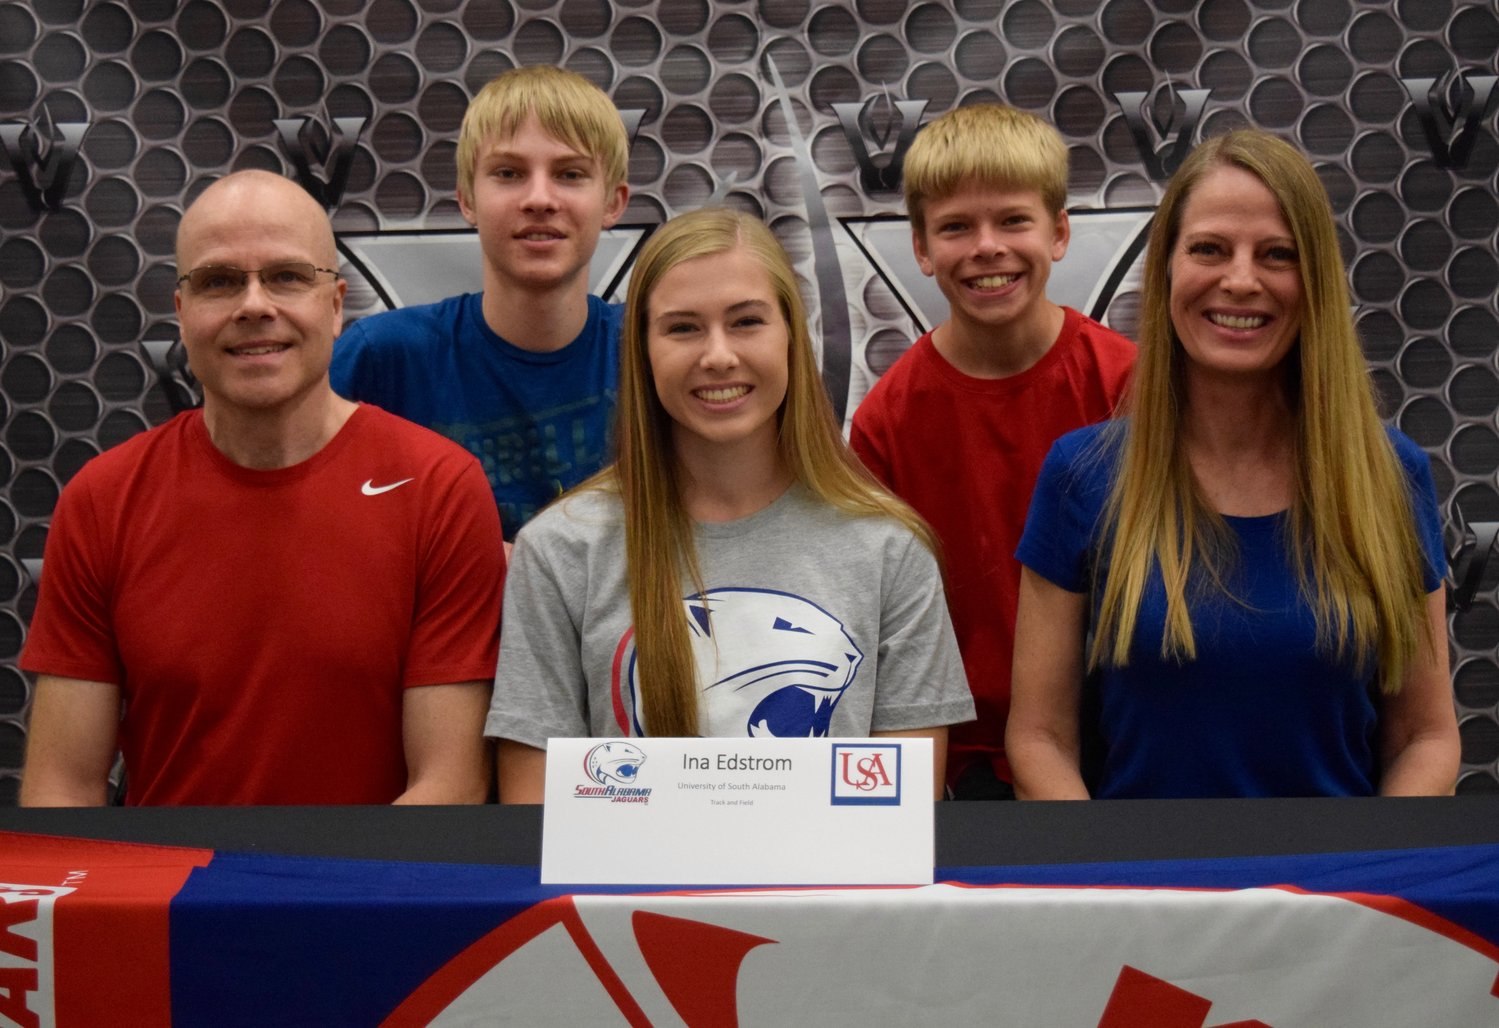 Ina Edstrom signed to compete in the pole vault at South Alabama University at a ceremony Tuesday morning at Vandegrift High School.